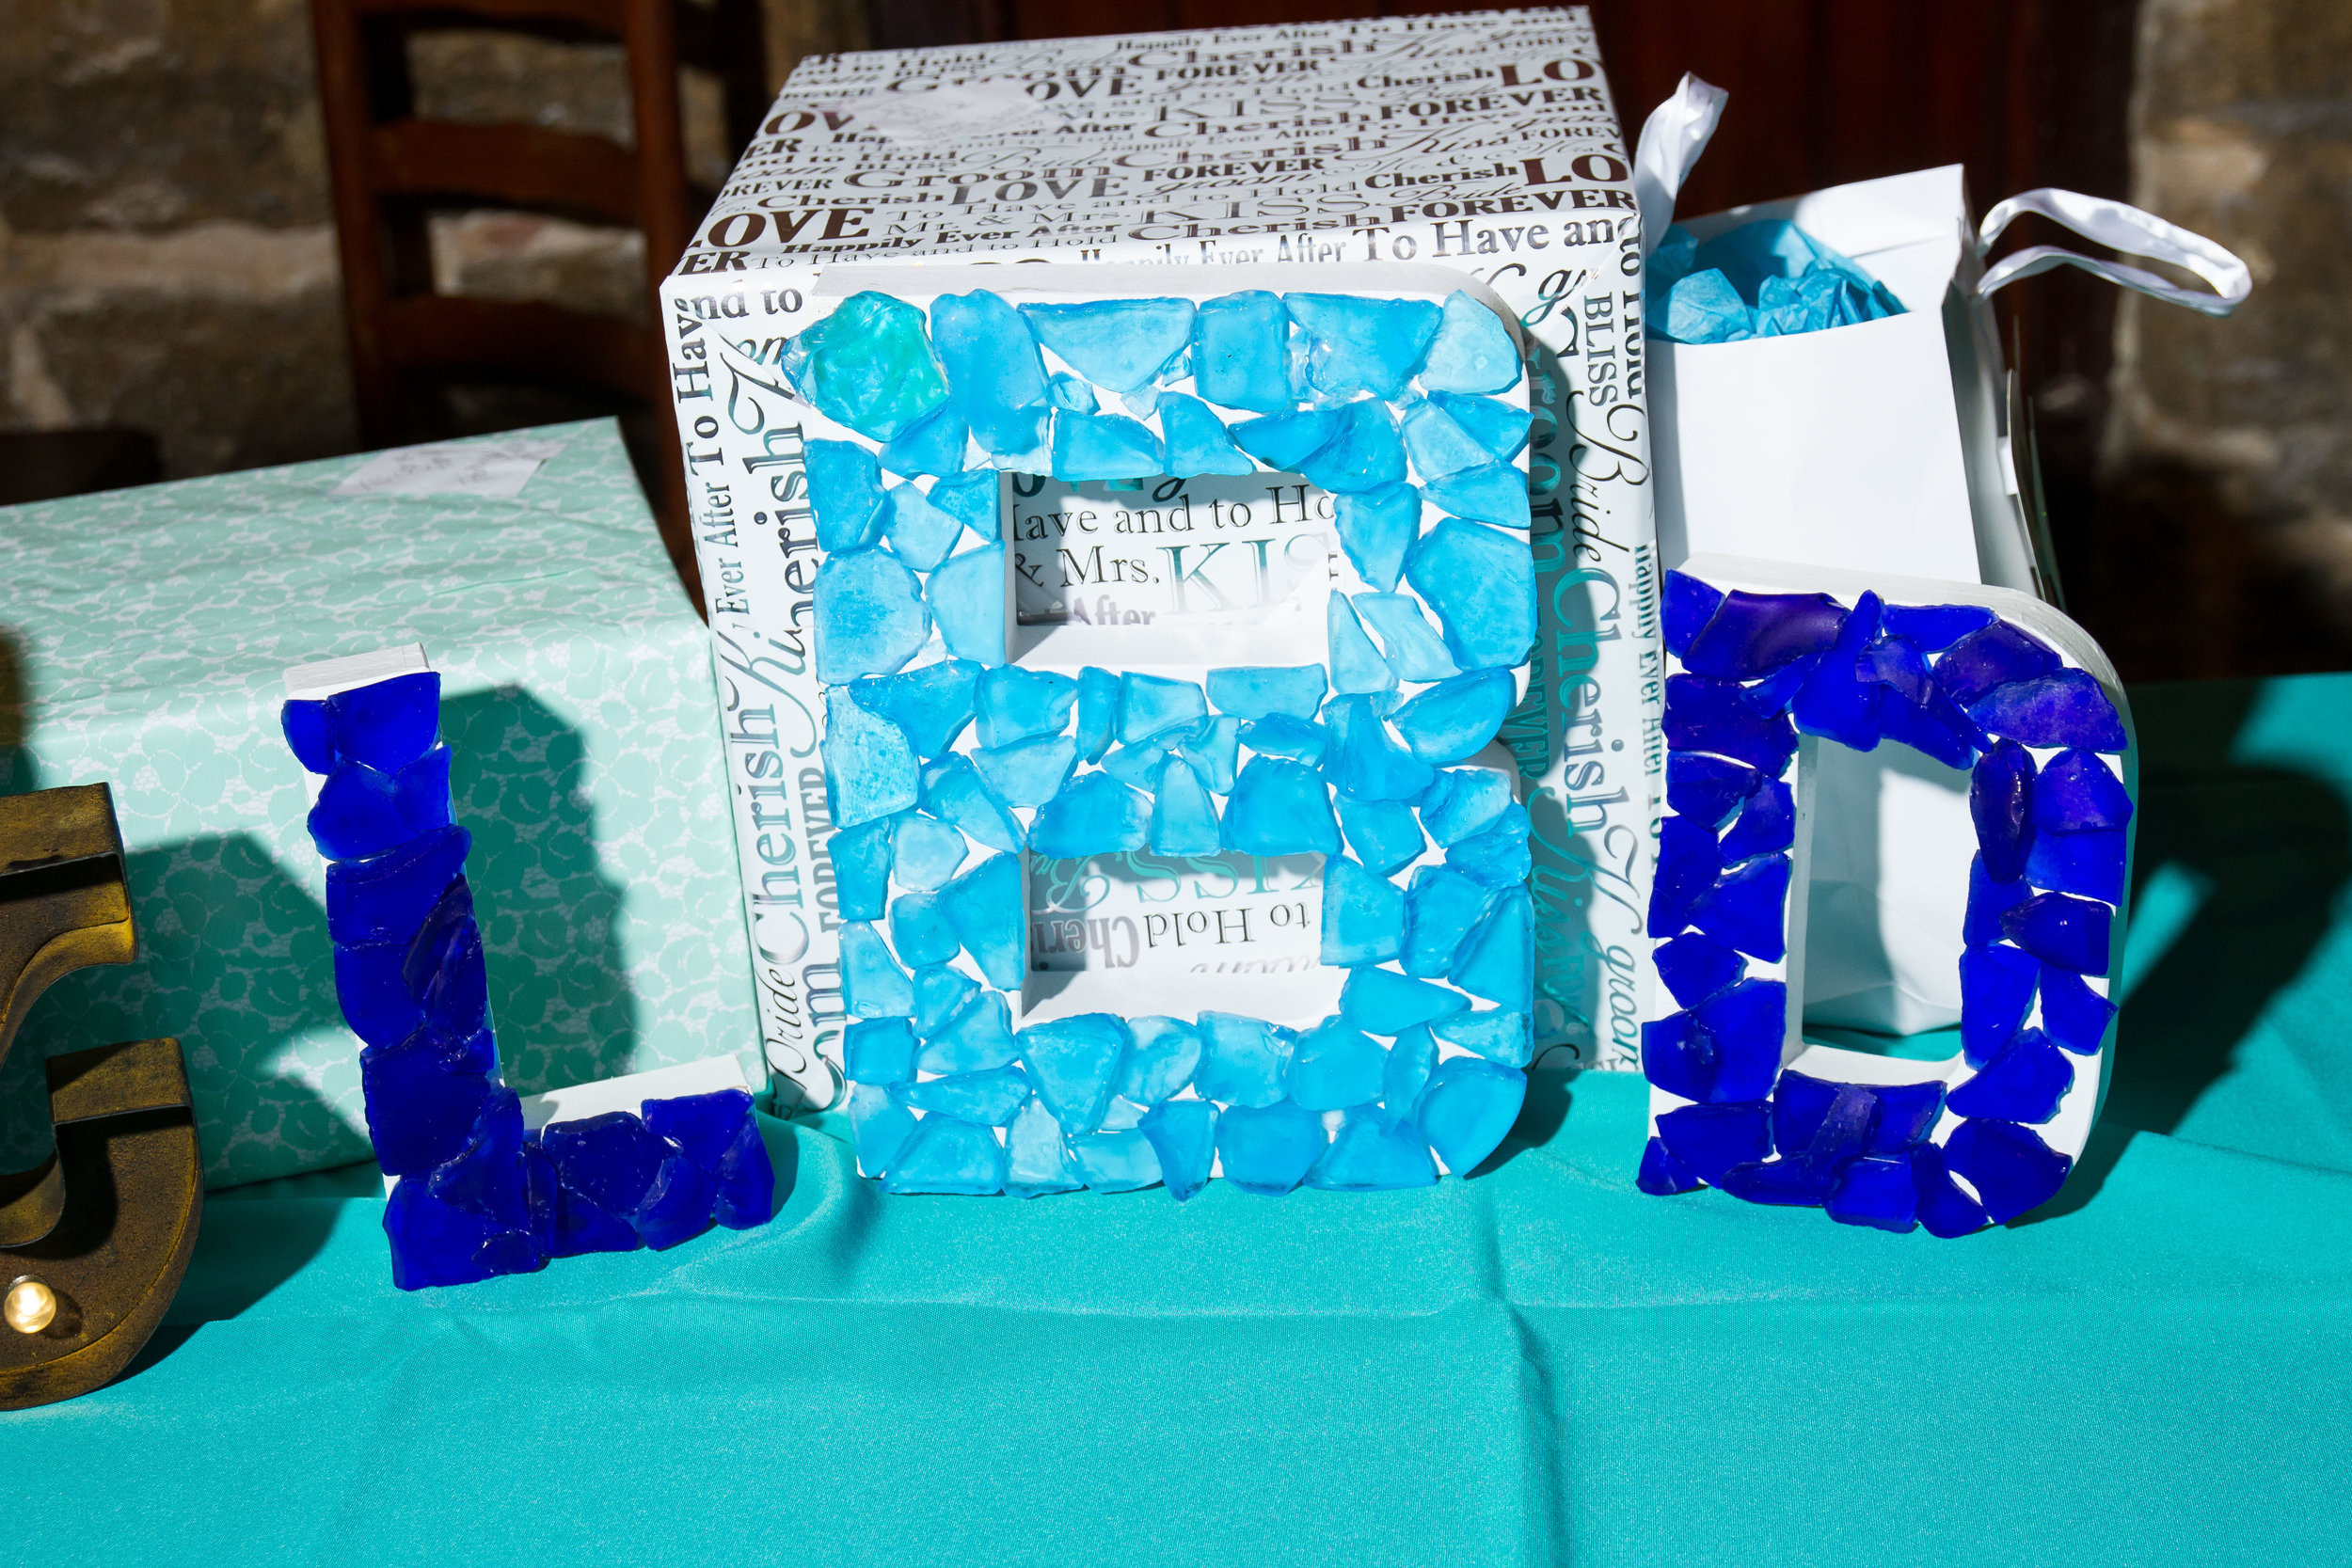 20150425_kelso-barrera_wed-971_web.jpg